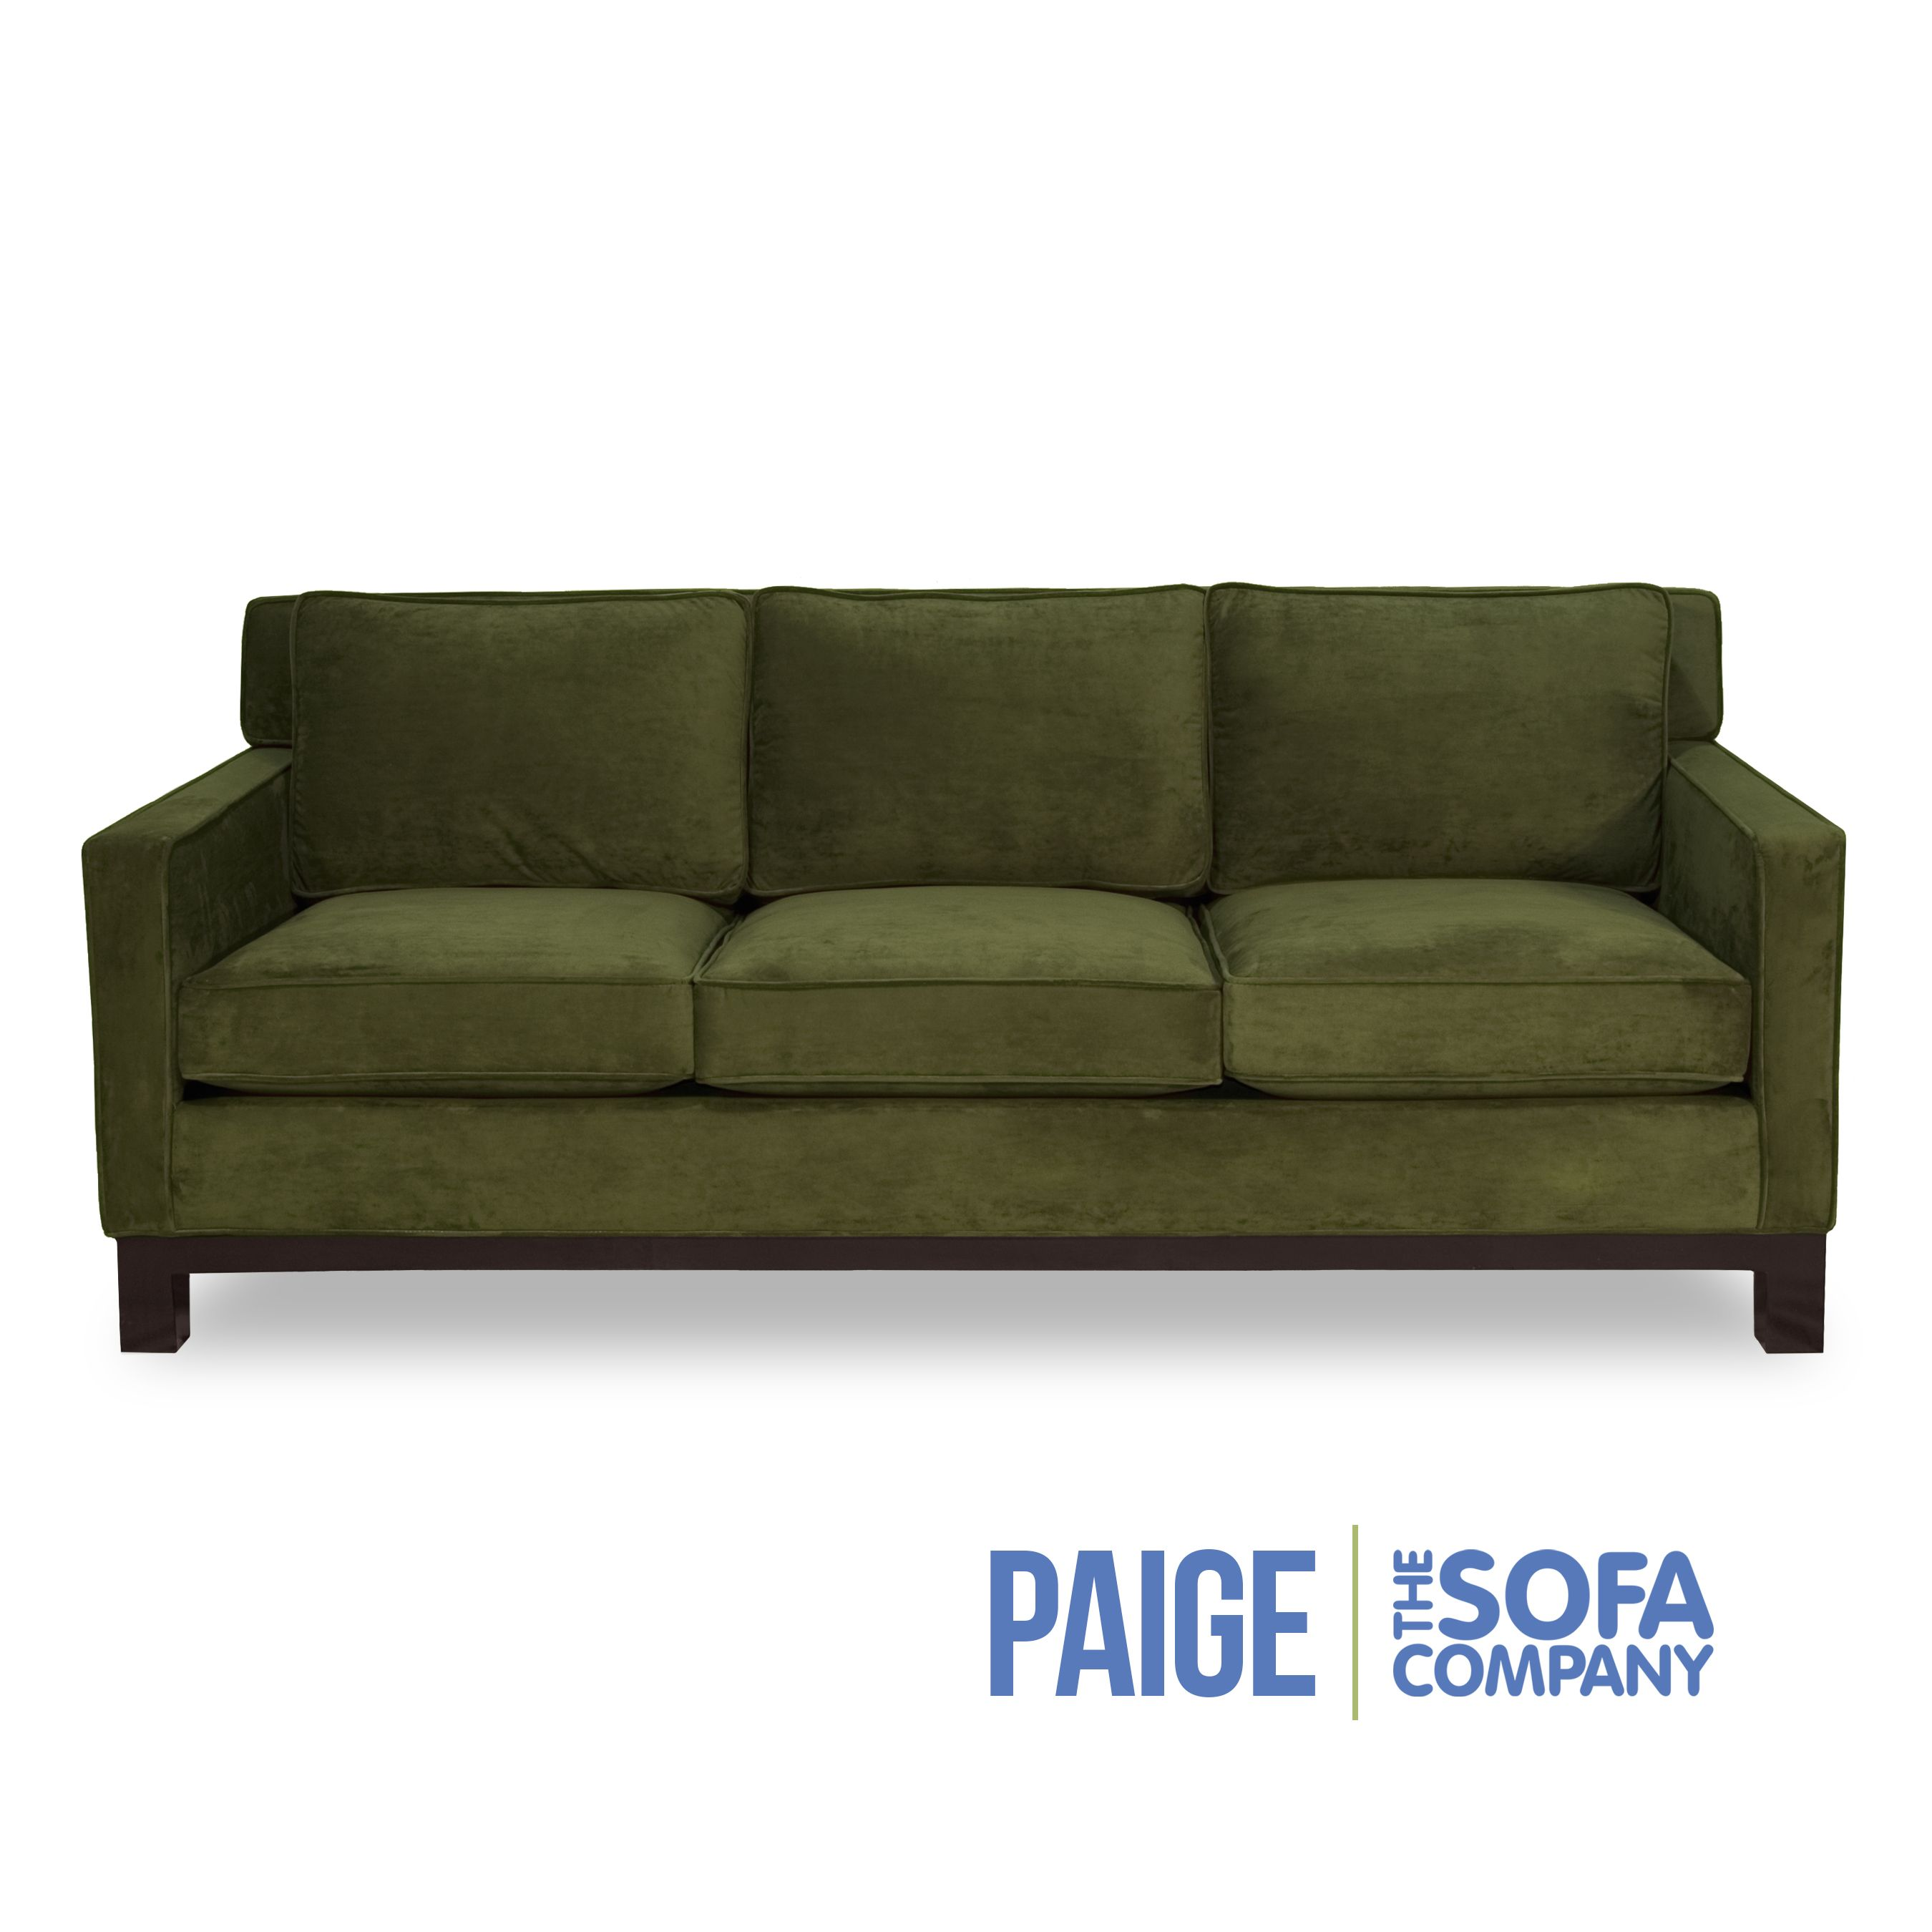 The Sofa Company Features Over Custom Furniture Styles Like Paige Sofas In Our Los Angeles Showrooms